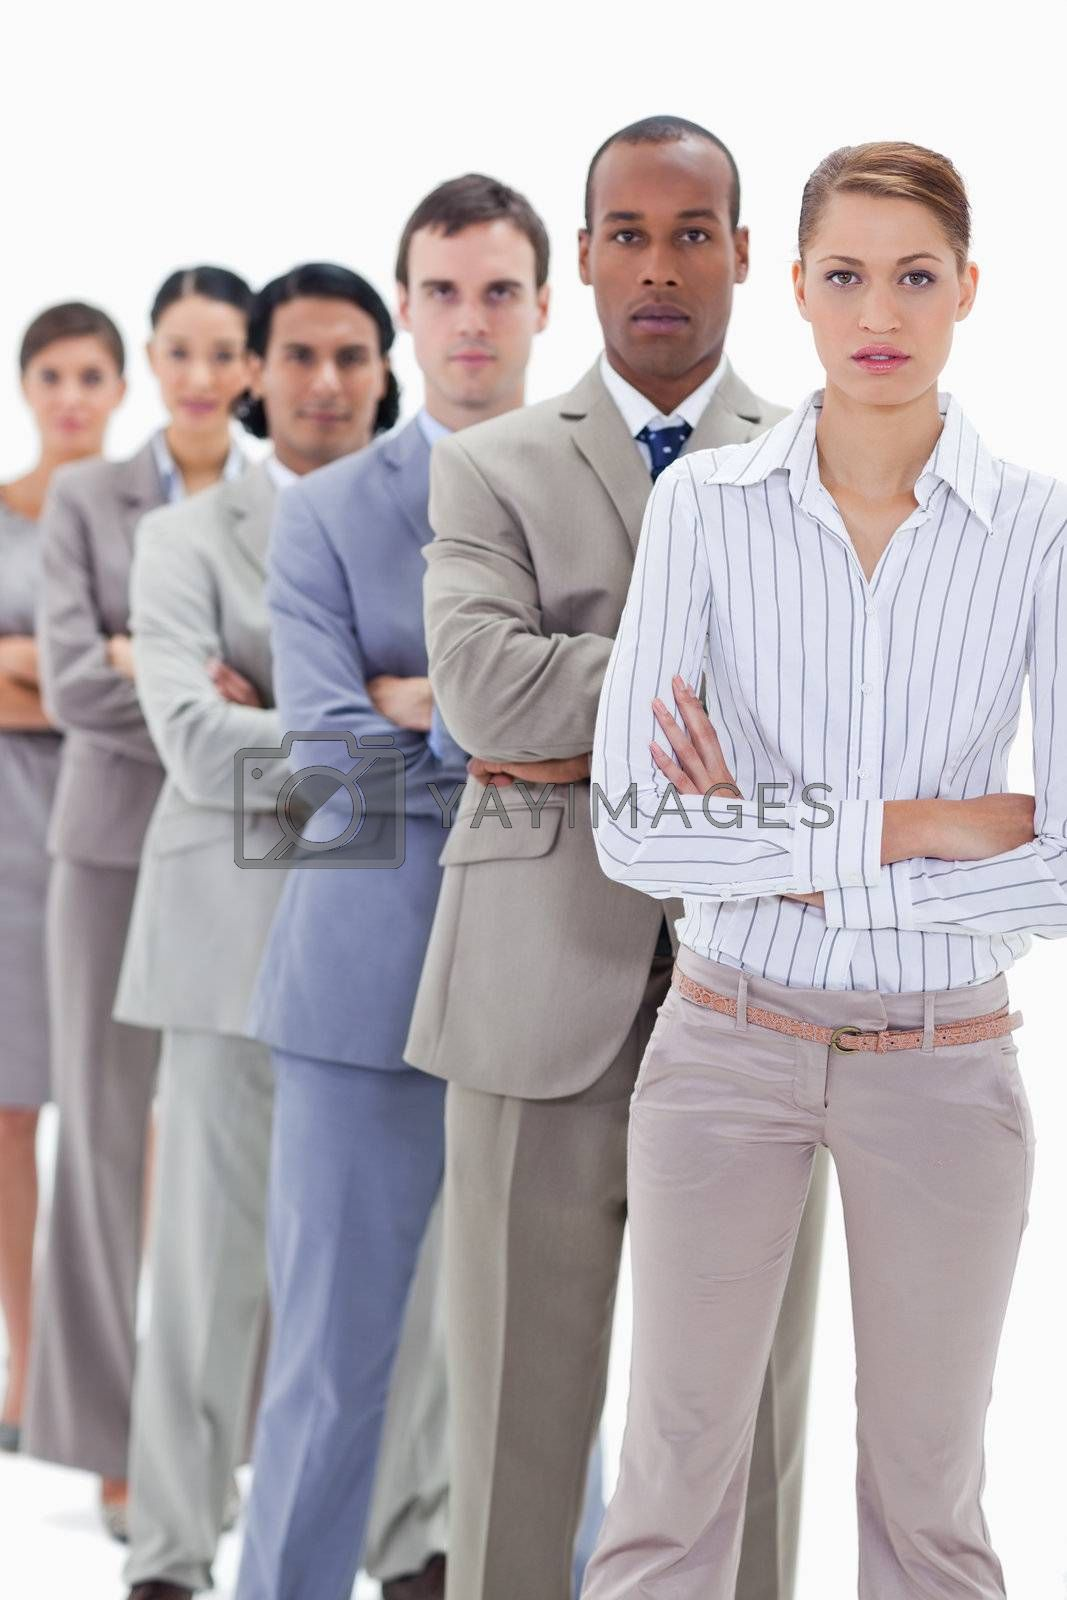 Serious colleagues dressed in suits crossing their arms in a single line with focus on the two first people